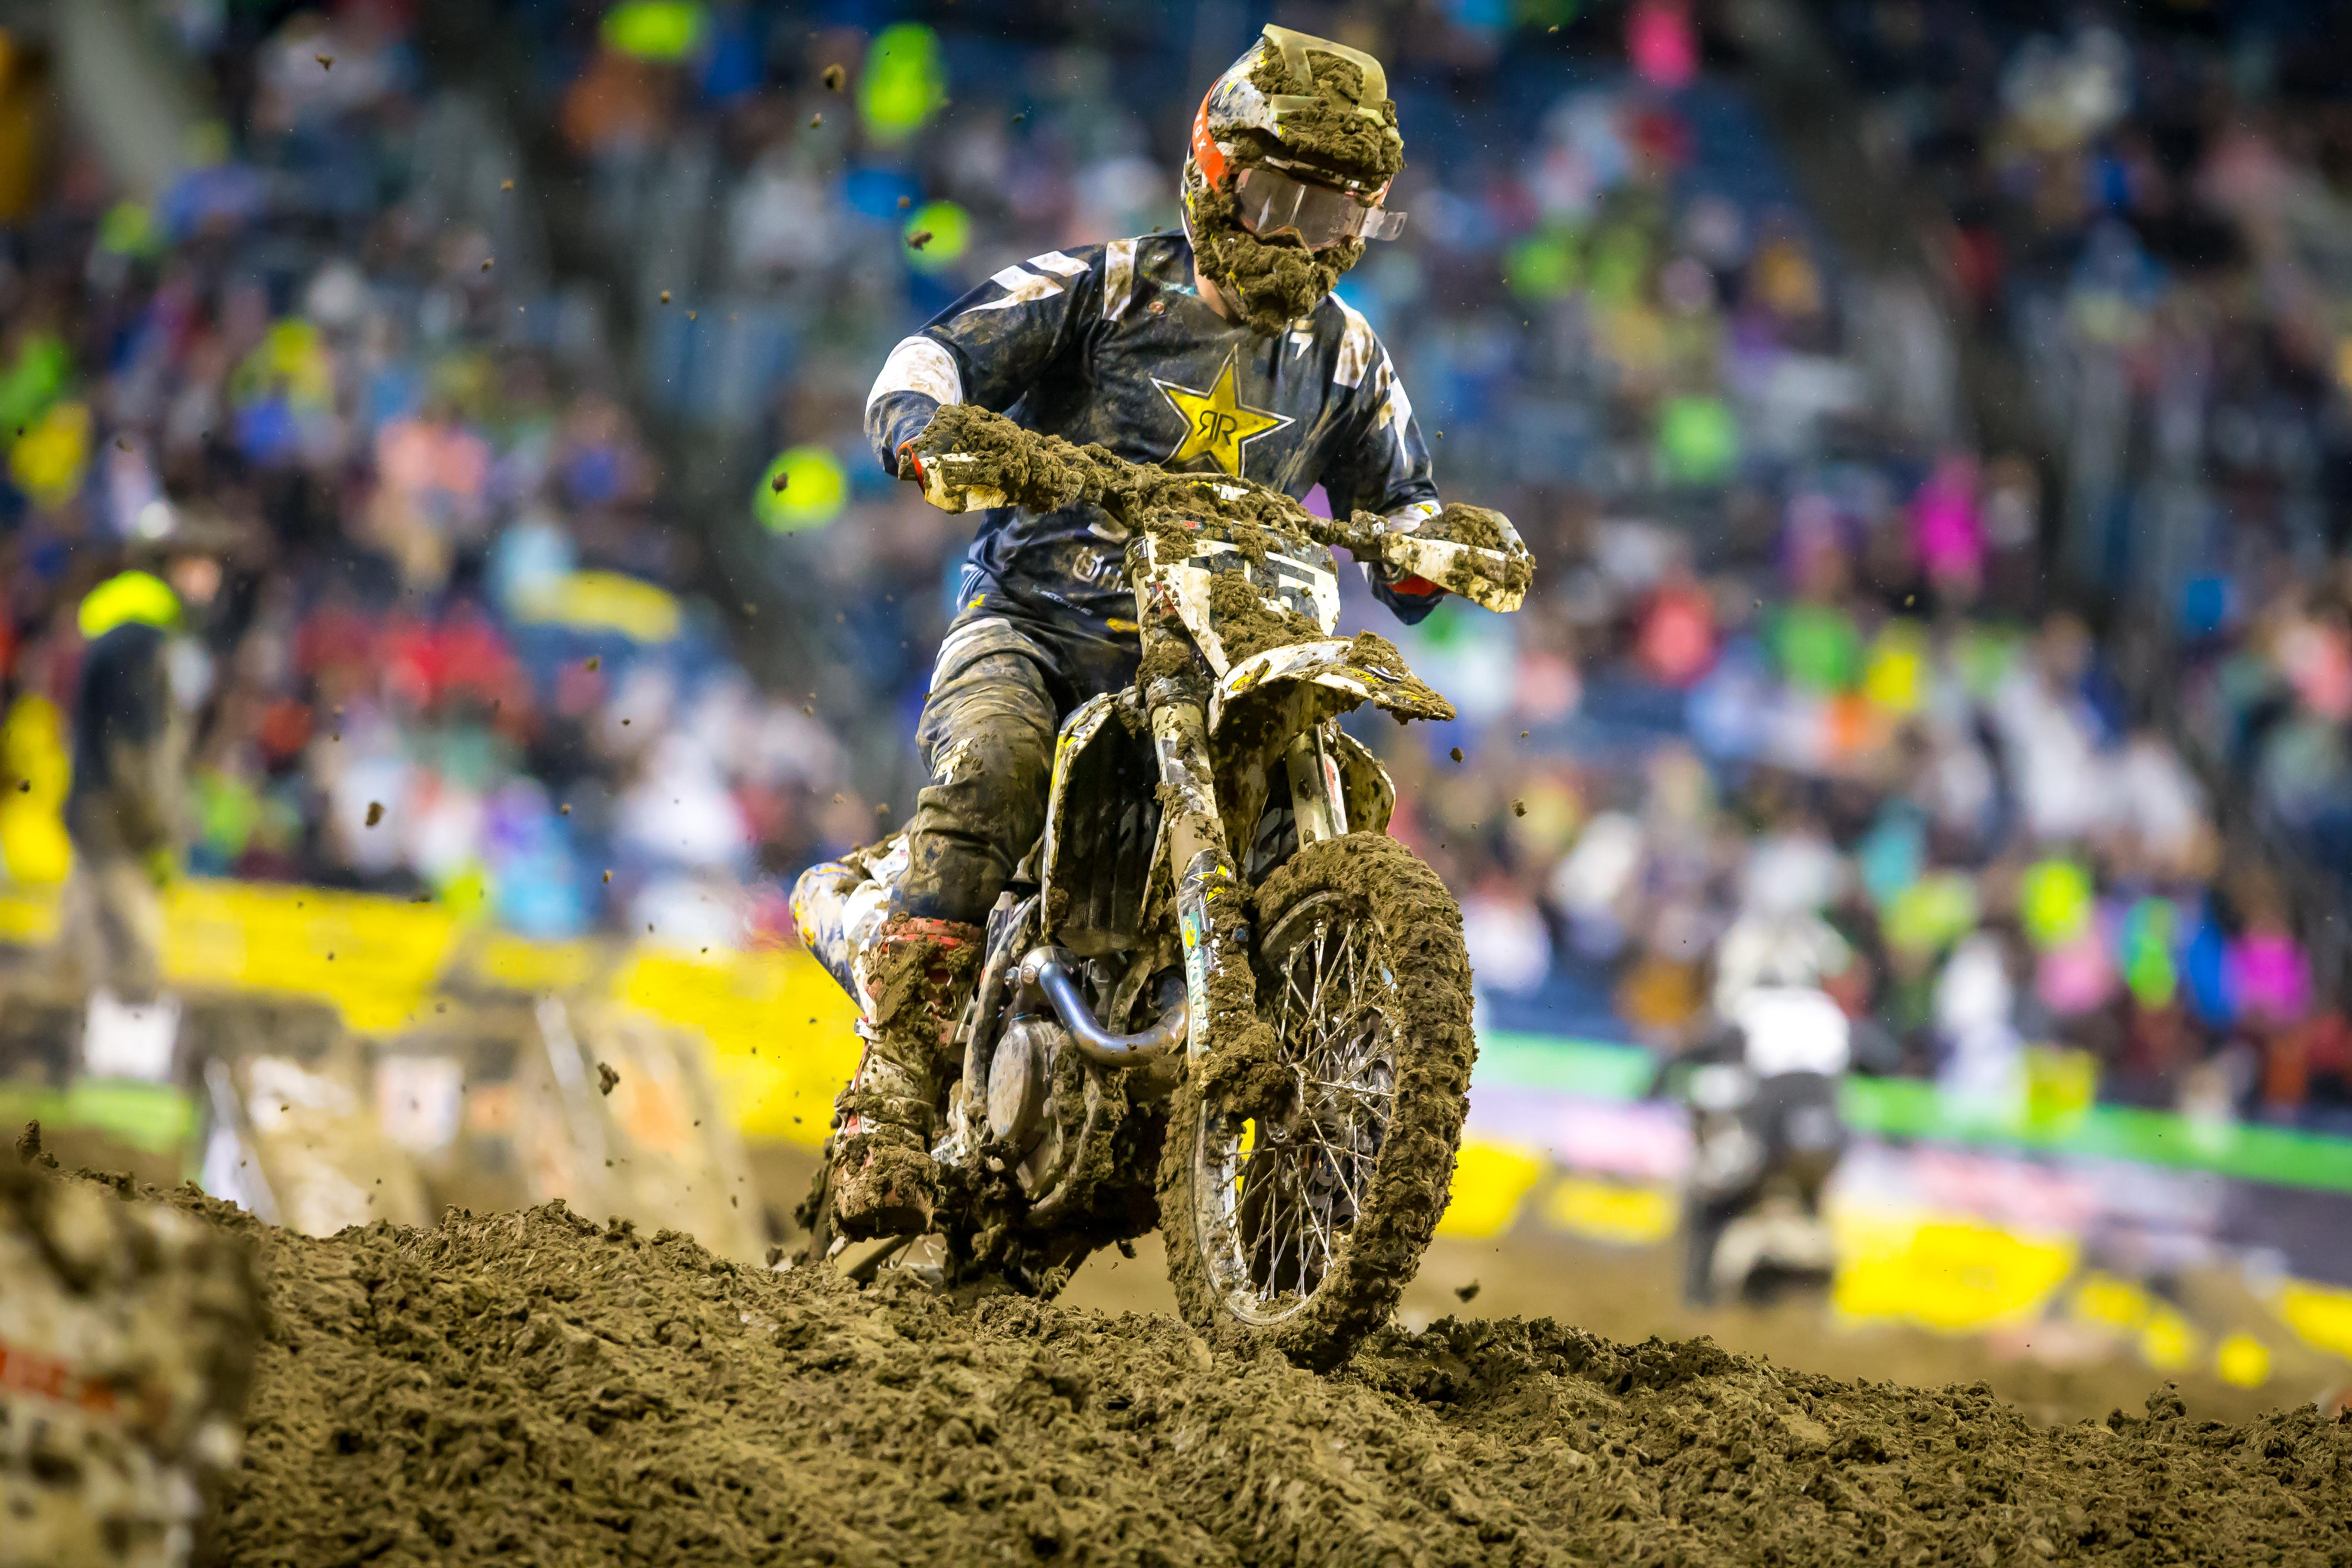 Dean Wilson battled the tough conditions to earn another top-10 finish